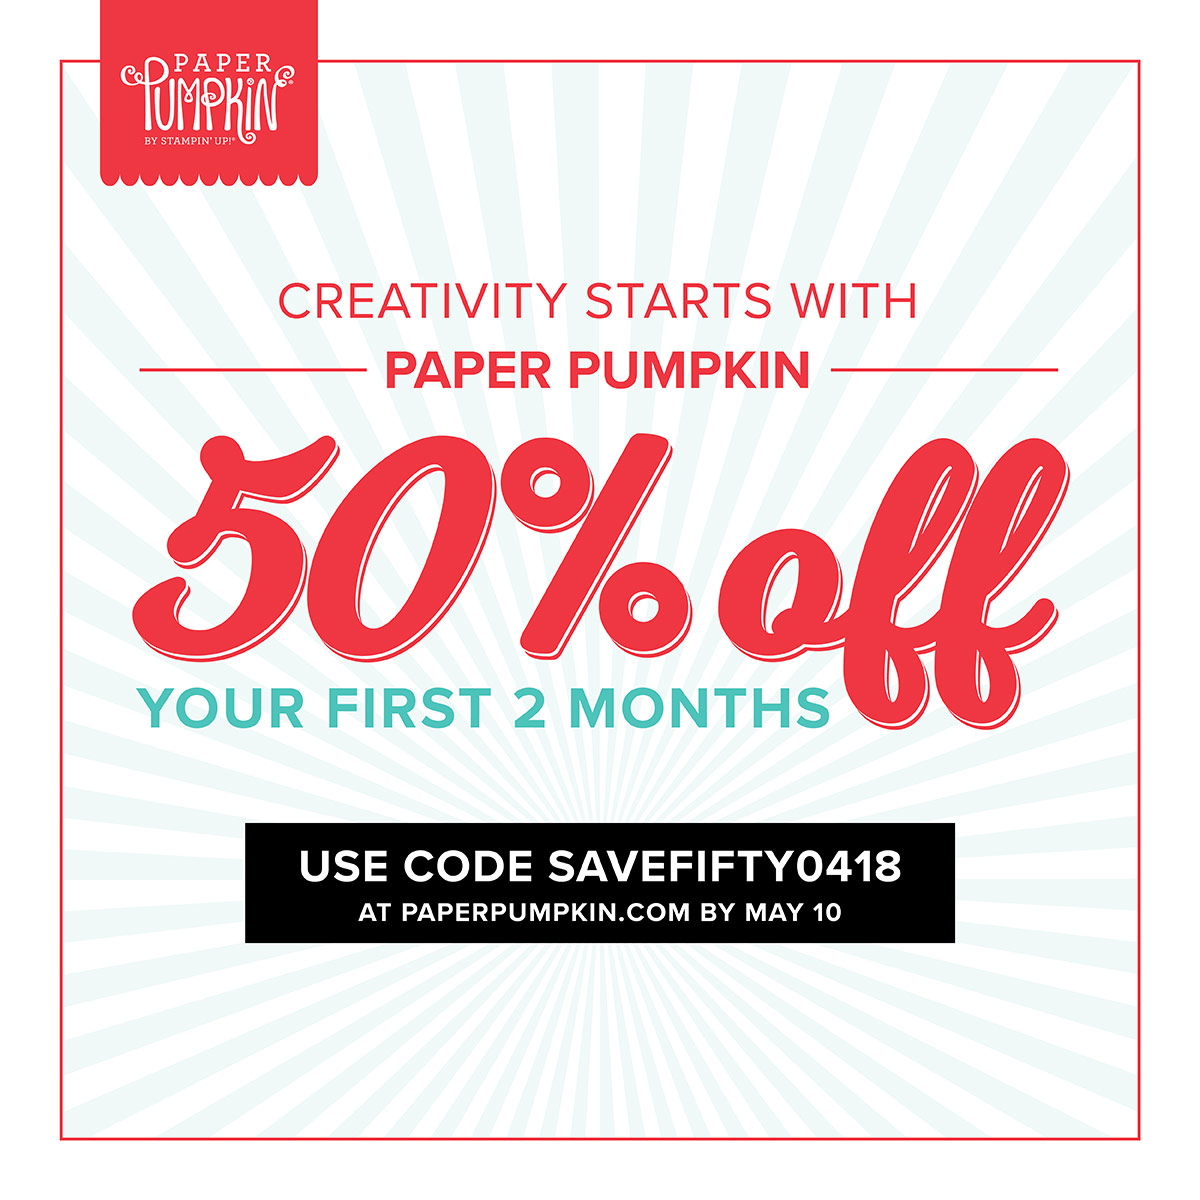 Creativity Starts With Paper Pumpkin